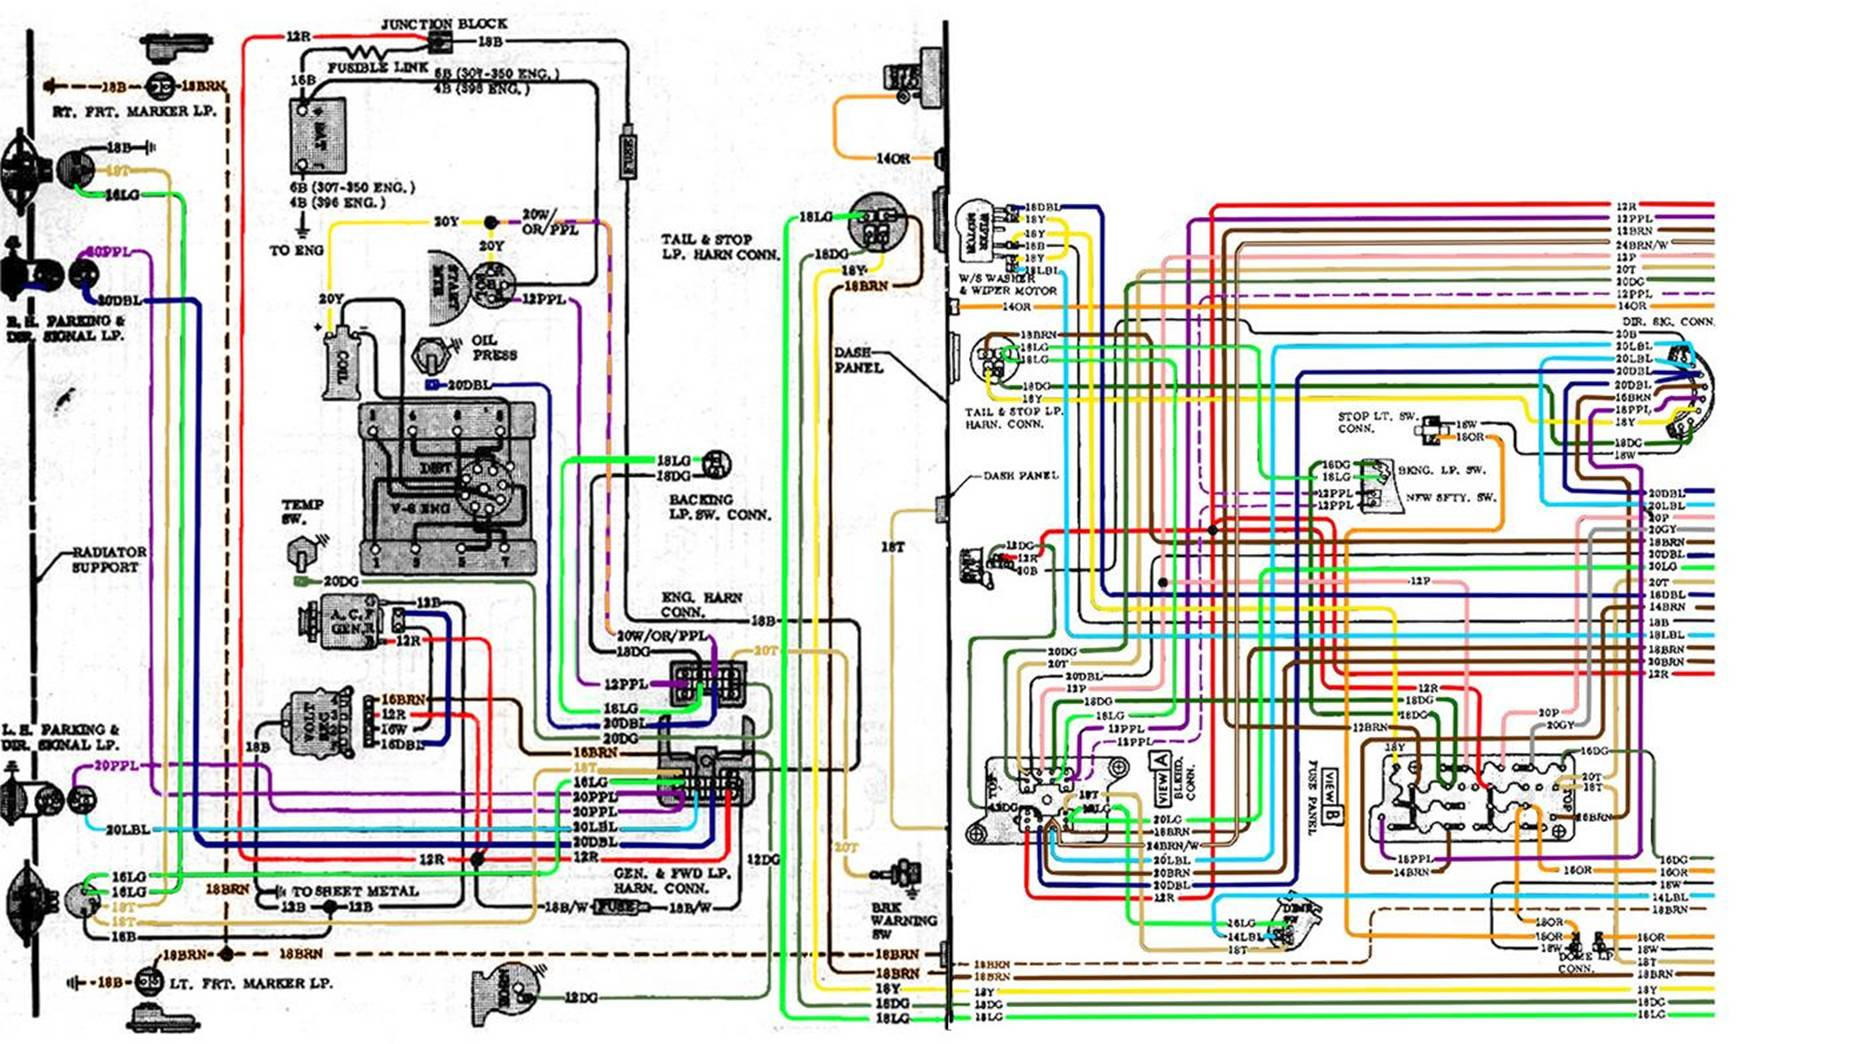 hight resolution of wiring diagram for a 1969 chevrolet c10 guide about wiring diagram 1969 chevy c10 truck on chevrolet trailer wiring harness diagram 1999